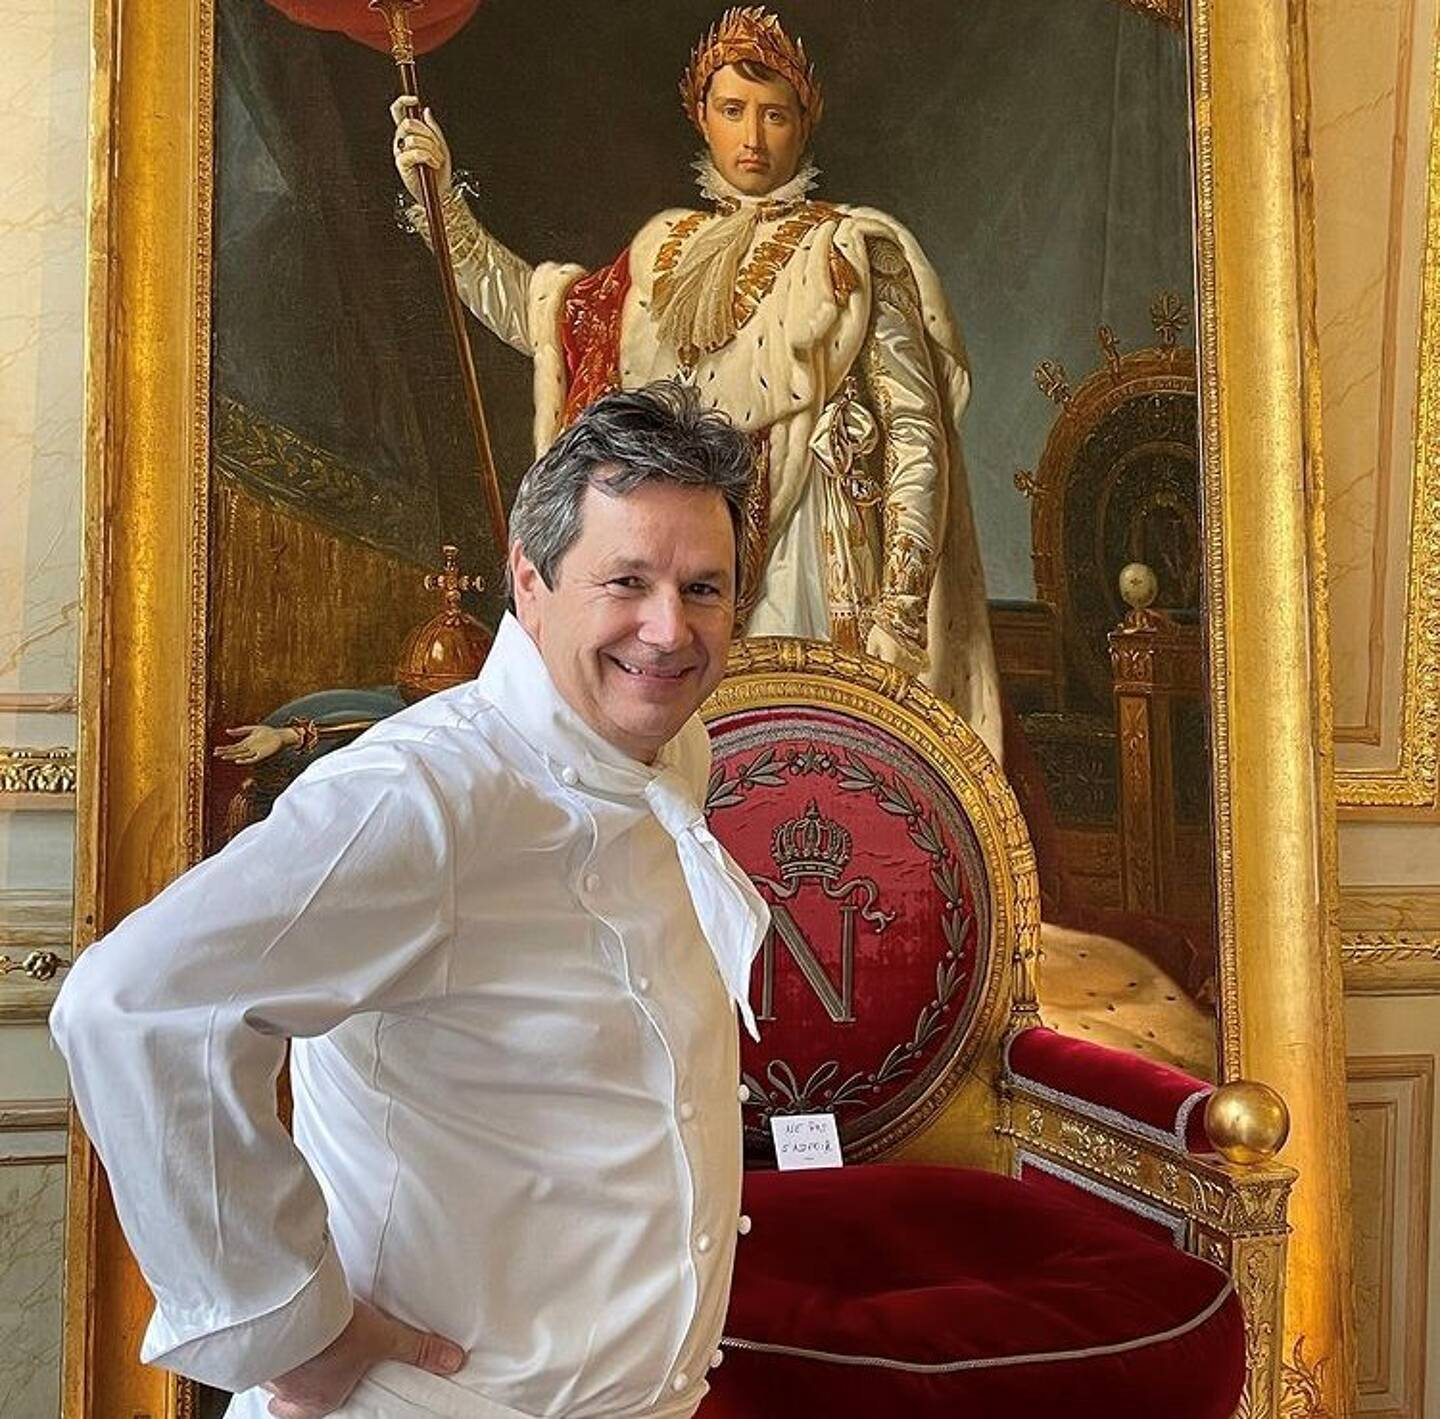 Le chef Christophe Leroy